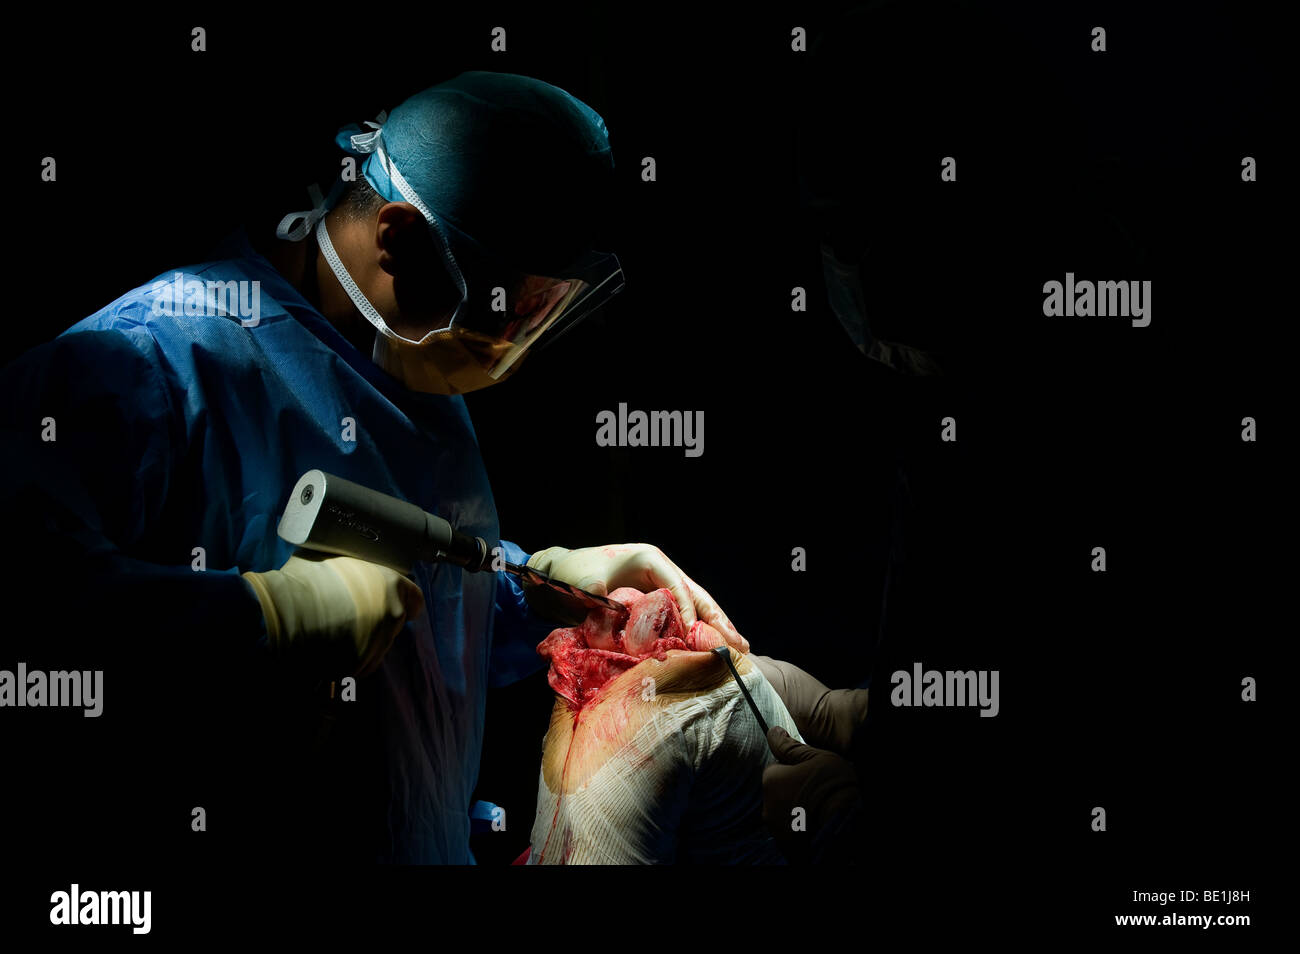 A patient undergoes knee replacement surgery at a West Midlands hospital, after being diagnosed with irreparable - Stock Image